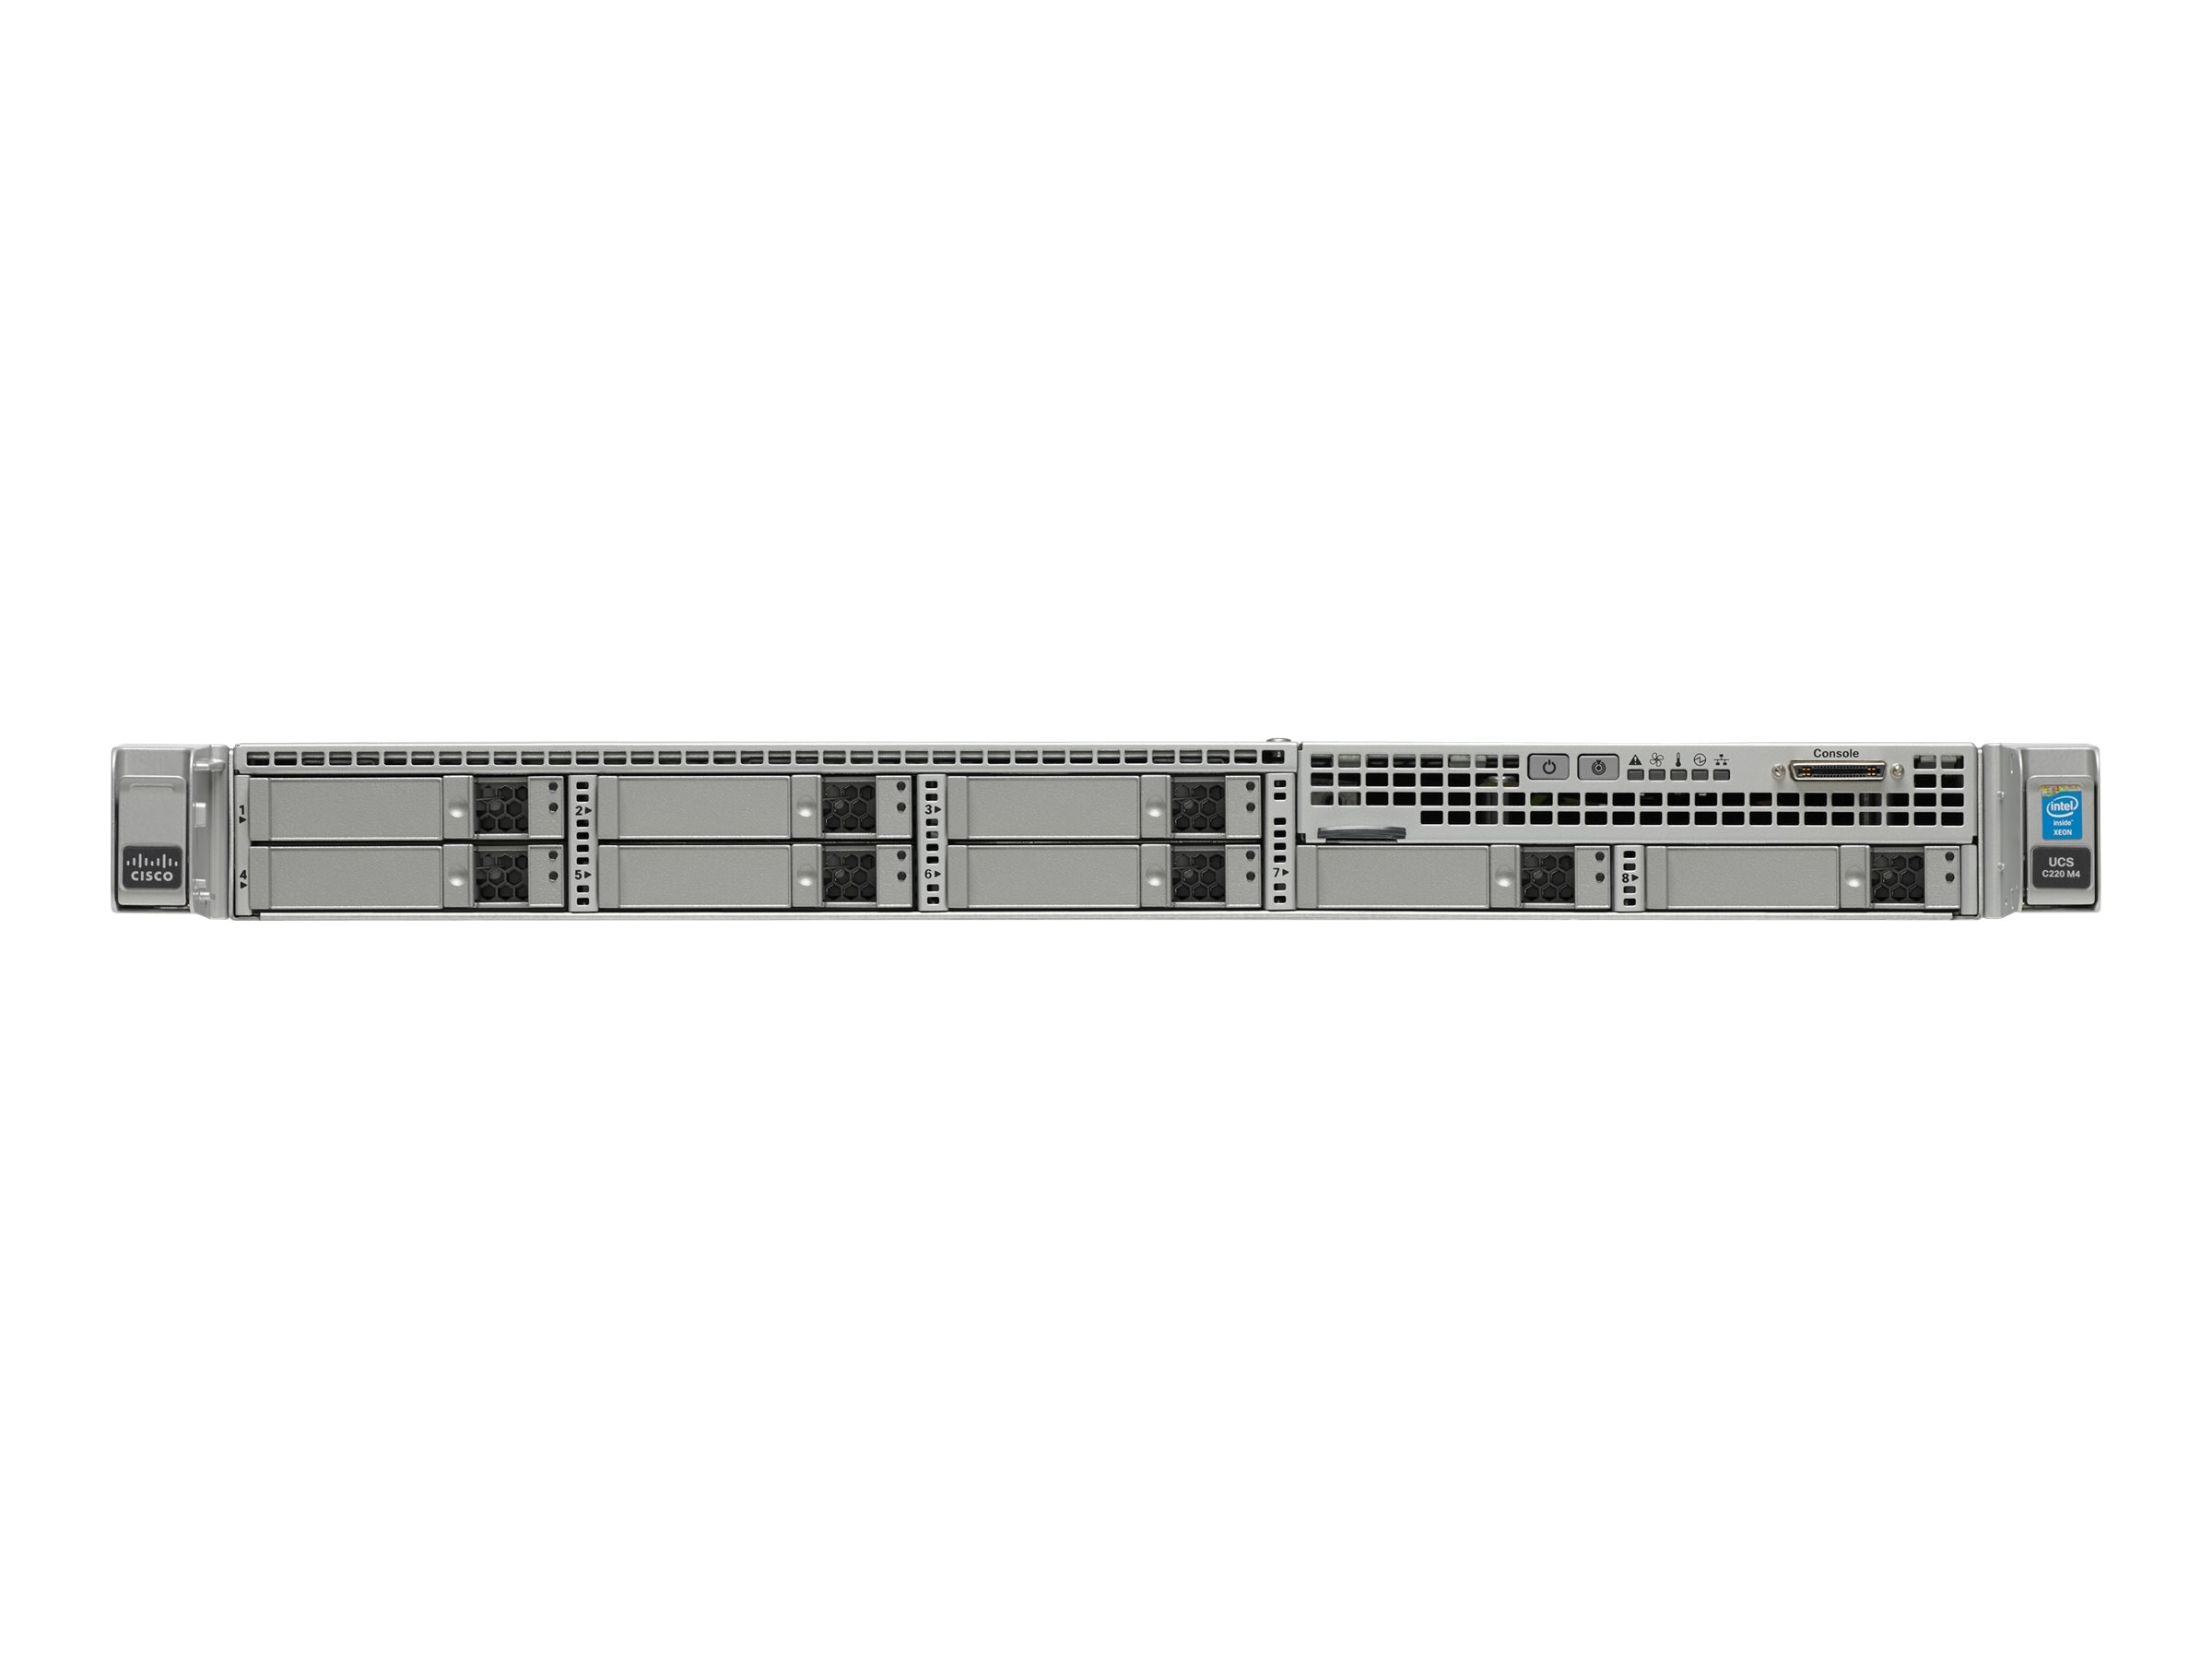 Cisco UCS SP Select C220 M4S Basic 1 (2x)Xeon E5-2609 v3, UCS-SPL-C220M4-B1, 19965371, Processor Upgrades